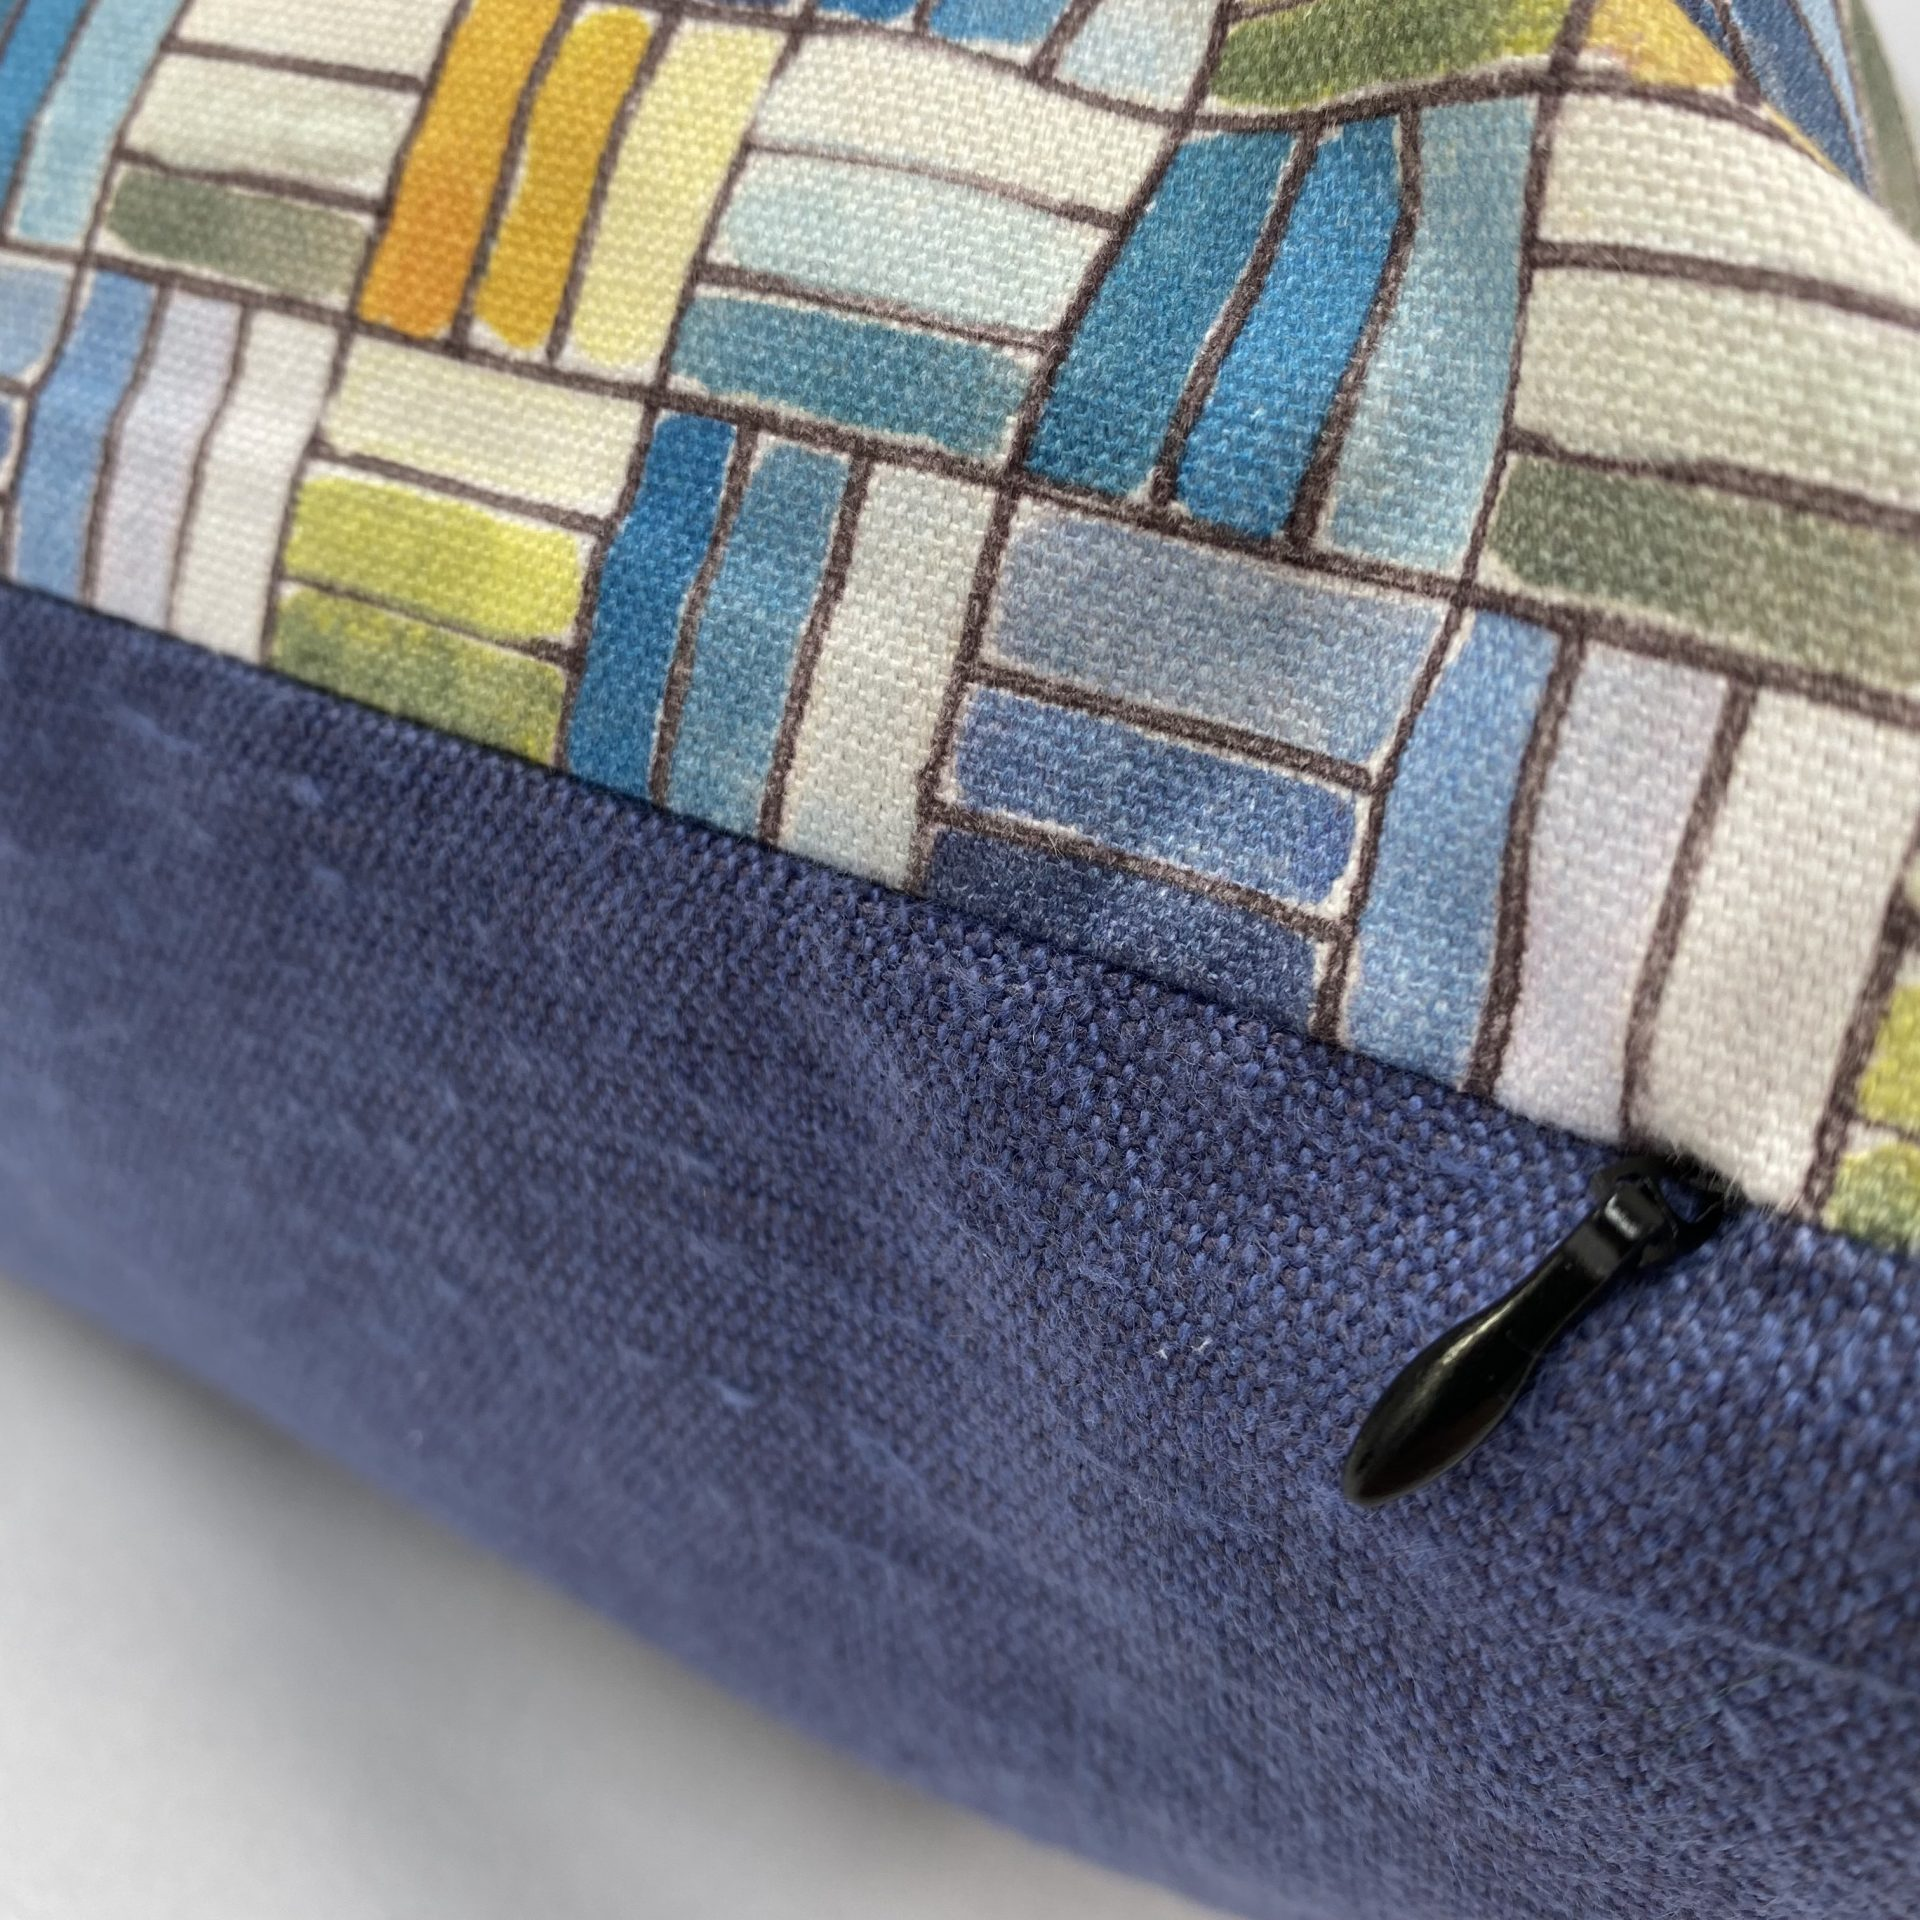 Digitaly printed textile cushion by Paul Bristow's